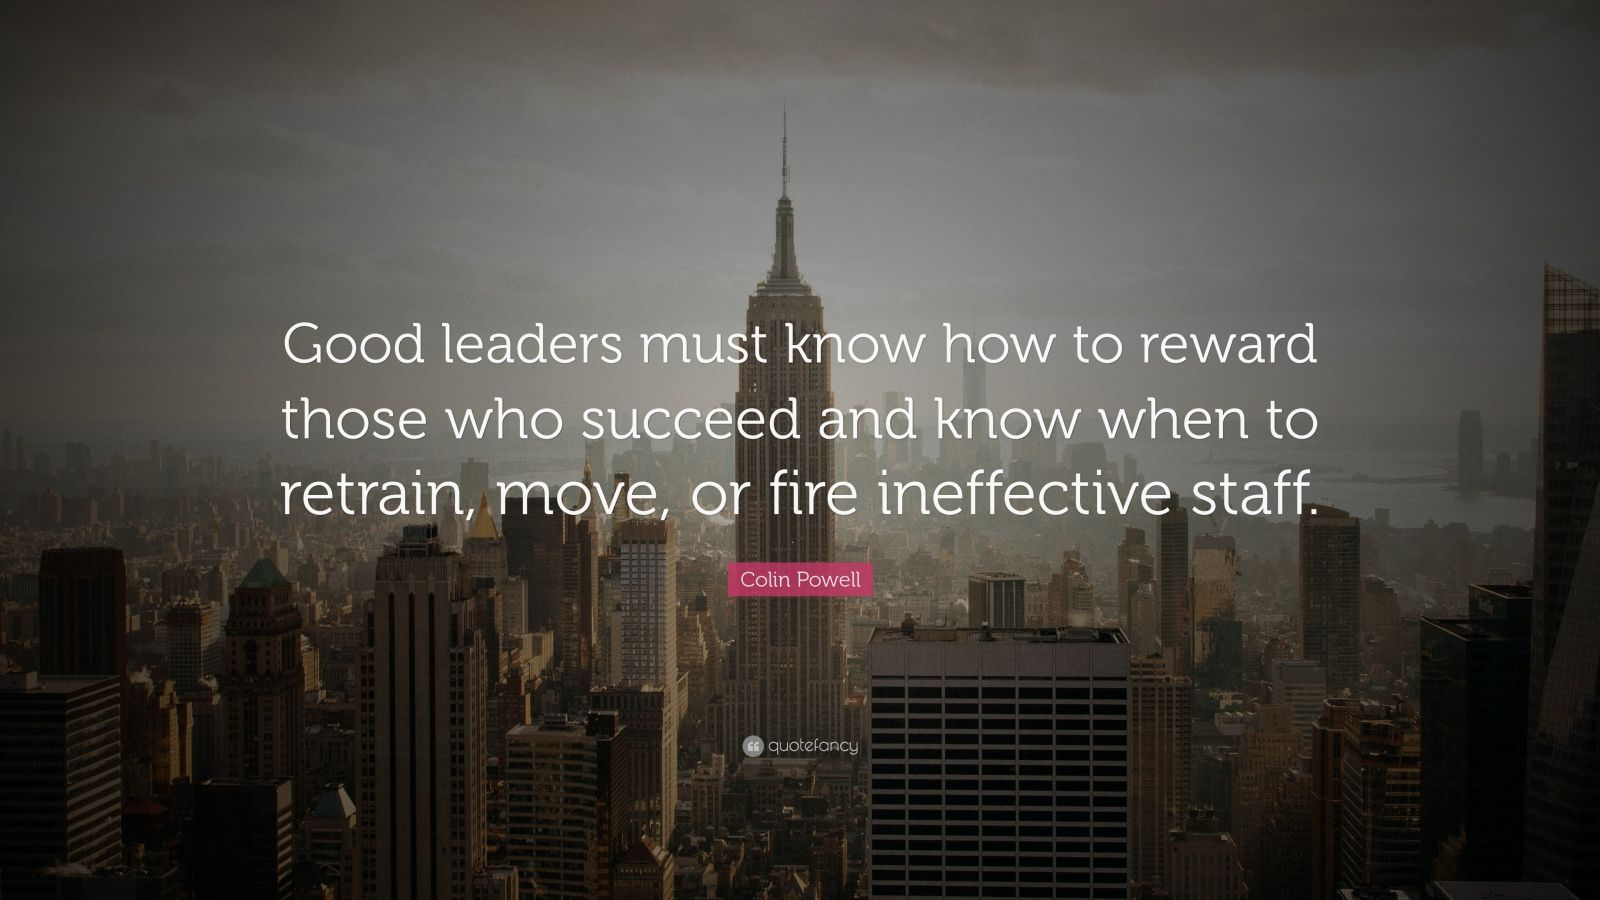 """Colin Powell Quote: """"Good leaders must know how to reward those who succeed and know when to retrain, move, or fire ineffective staff."""""""